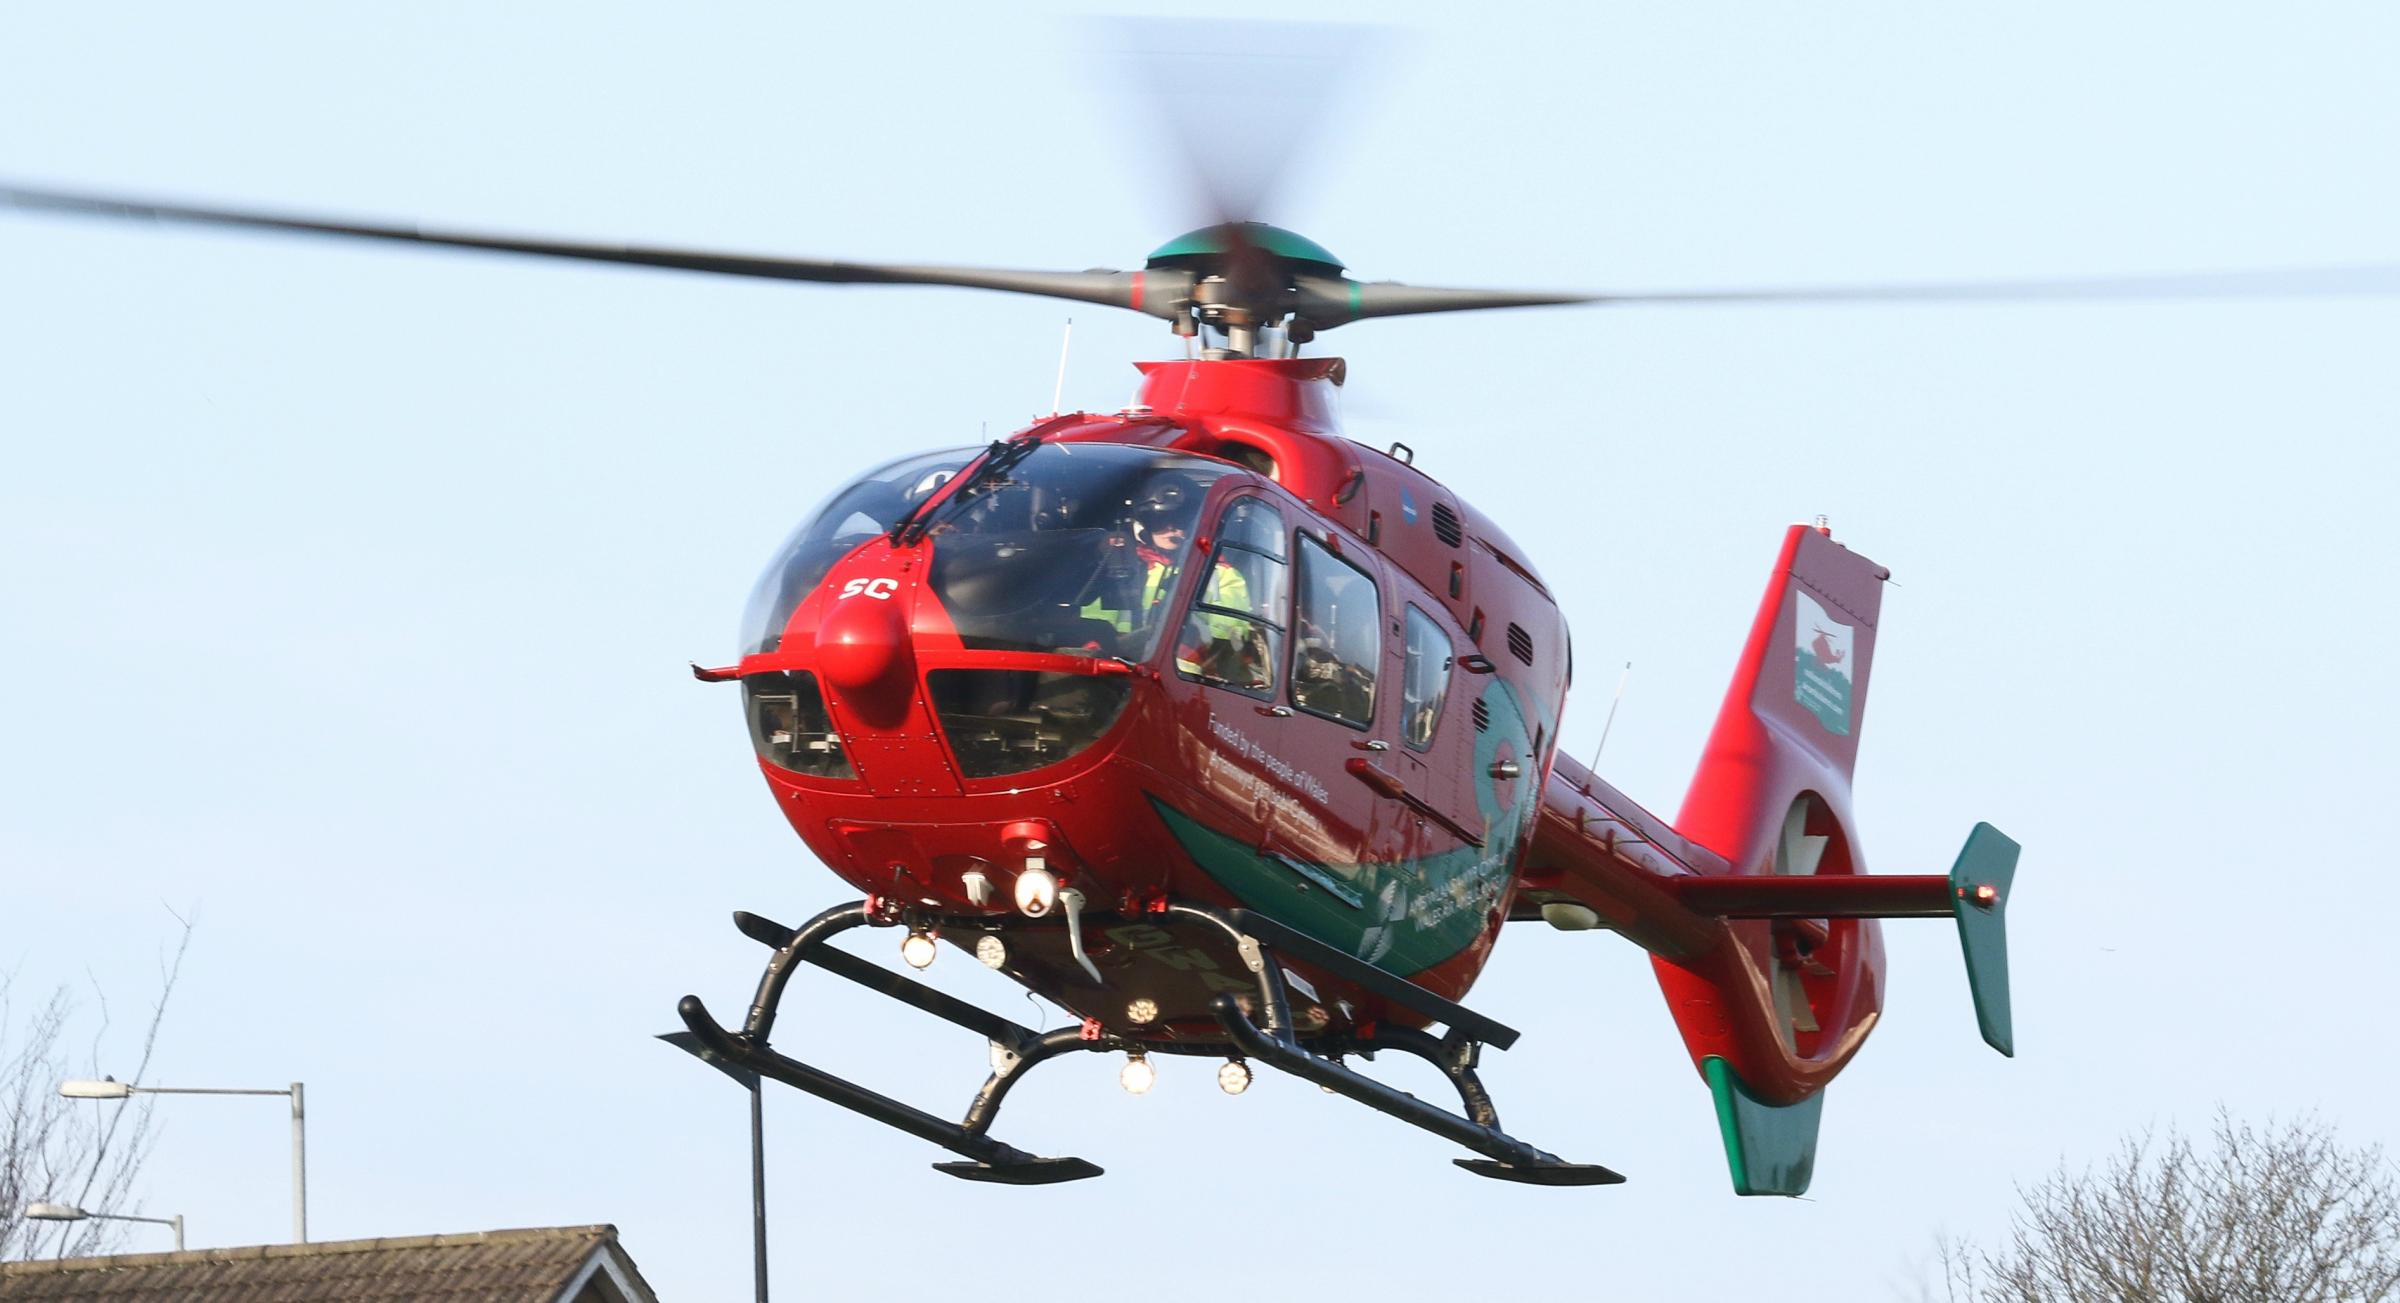 Crash victim was airlifted to hospital